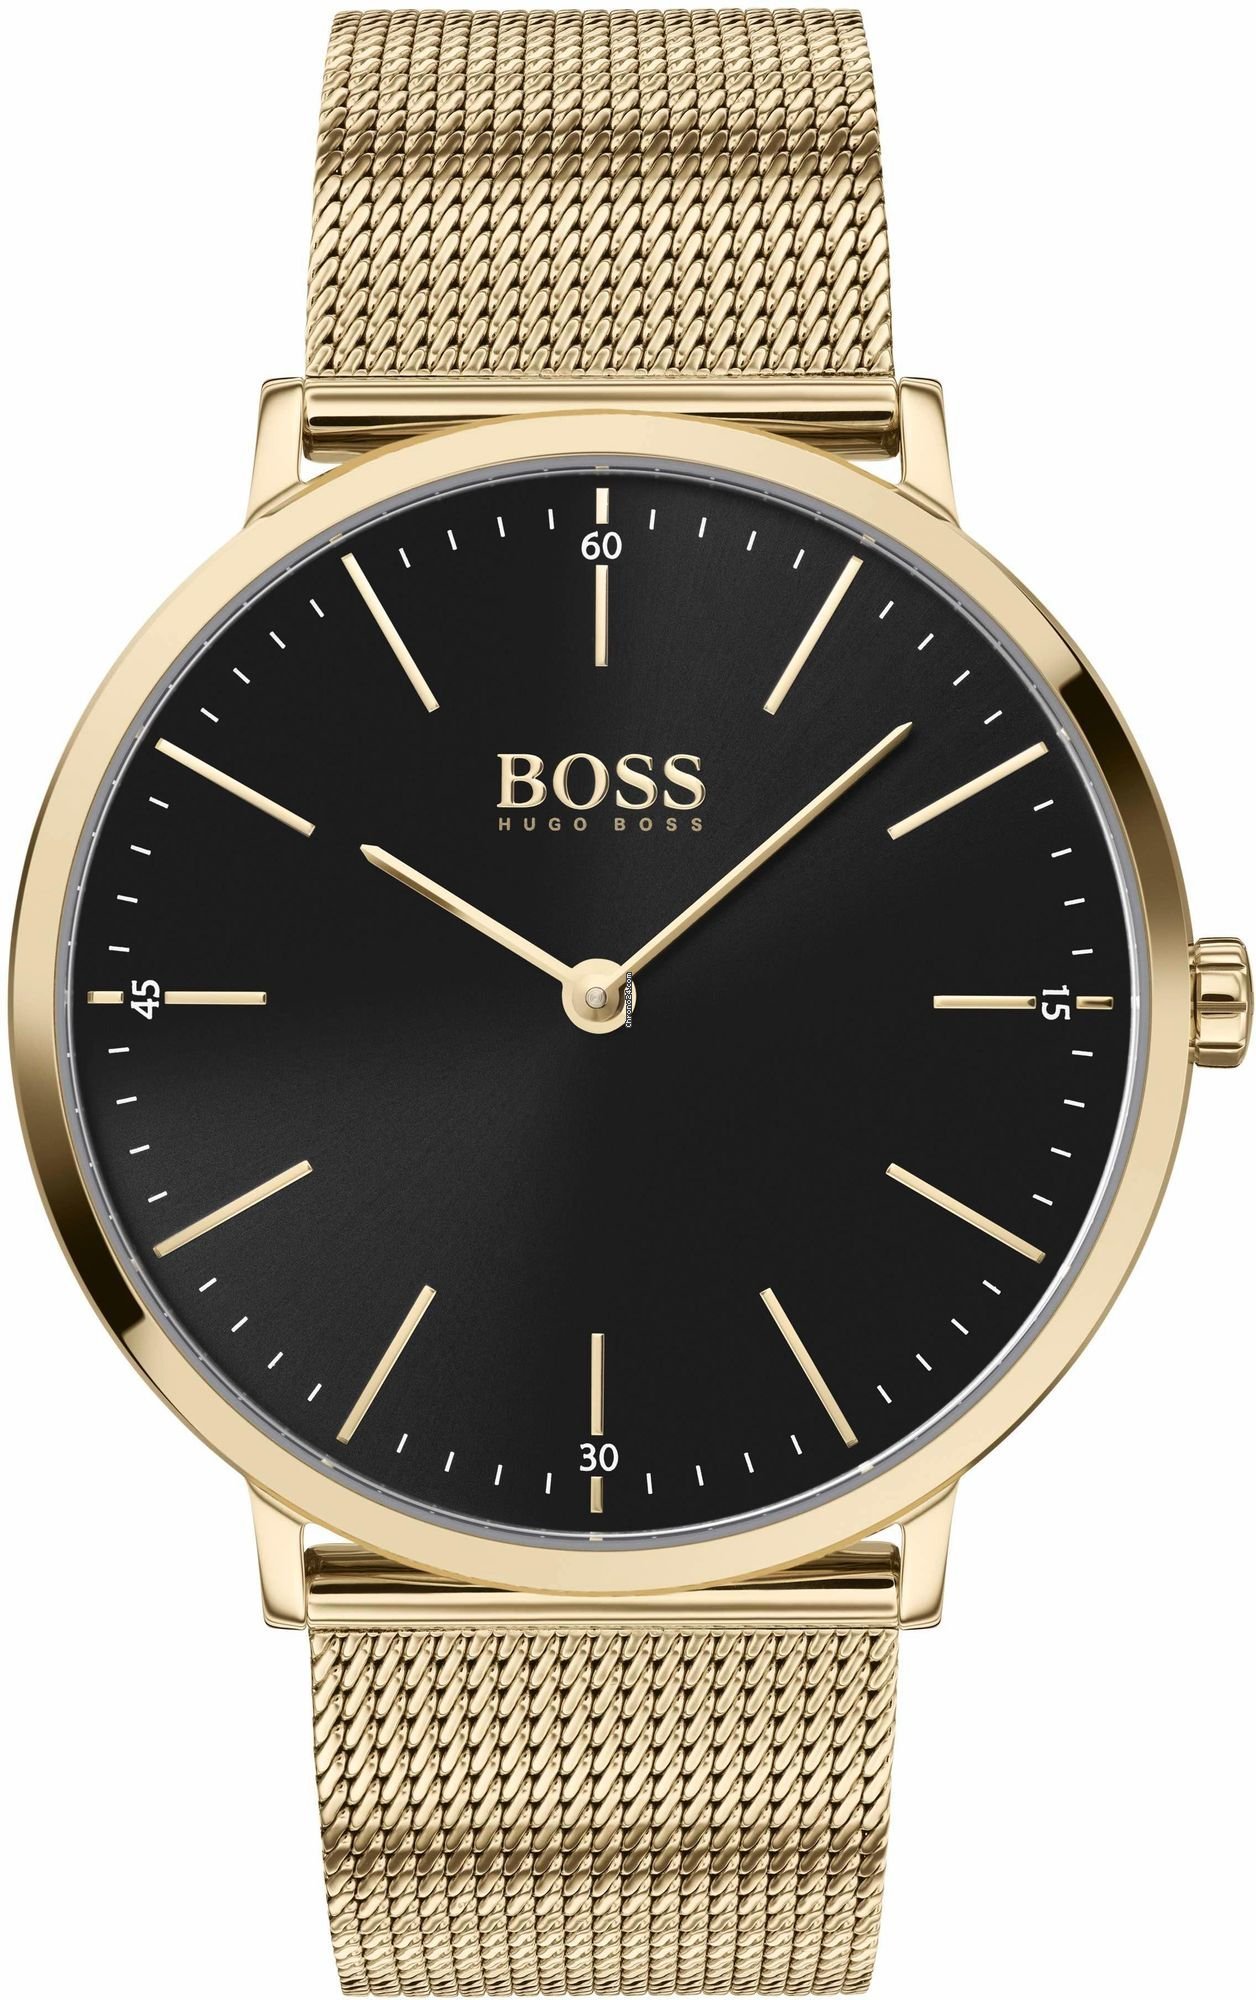 official photos new arrive new cheap Hugo Boss HORIZON 1513735 Herrenarmbanduhr